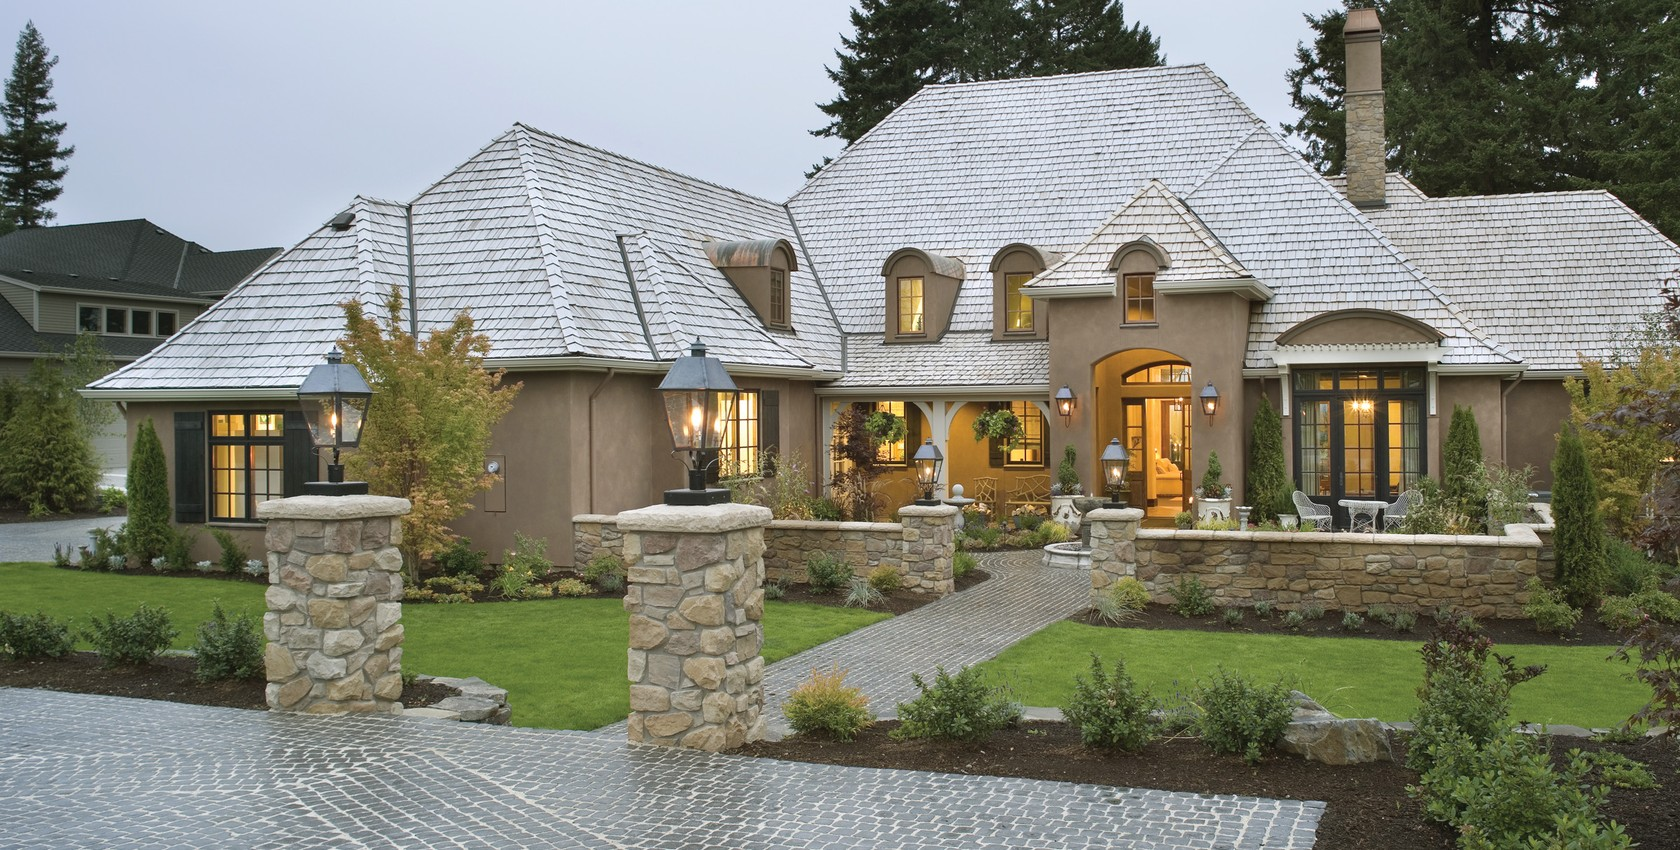 Image for Terrebonne-Featured in the 2007 Portland Street of Dreams-2885